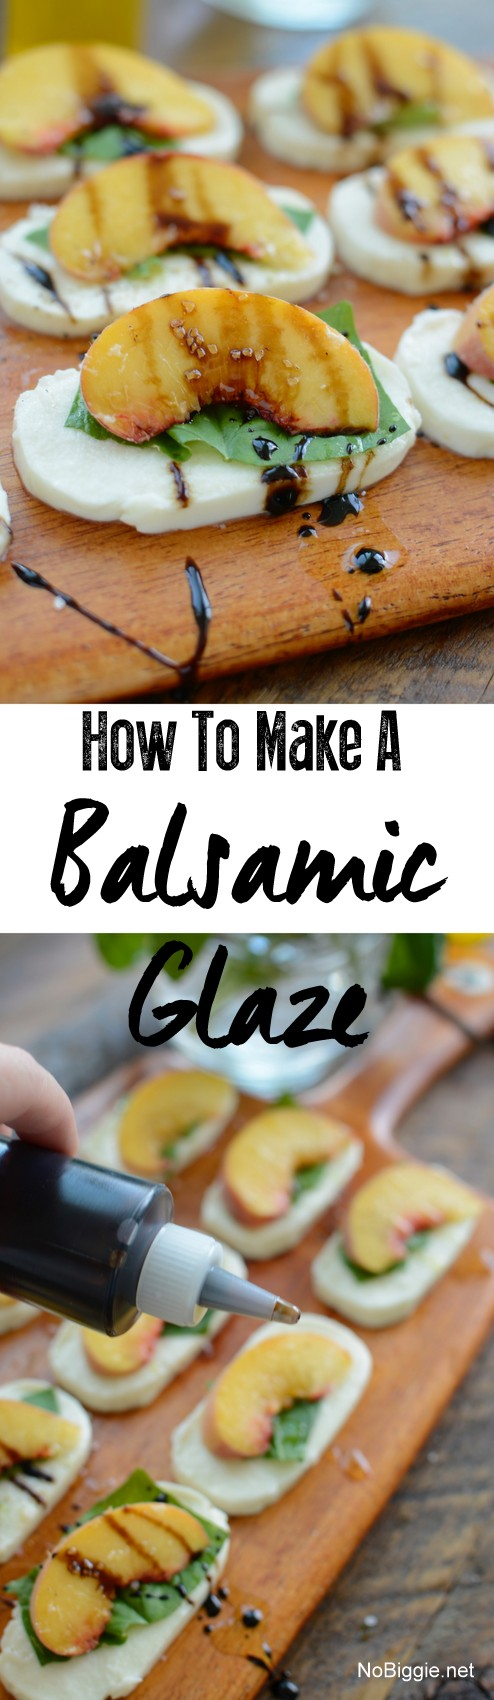 how to make a balsamic glaze | NoBiggie.net